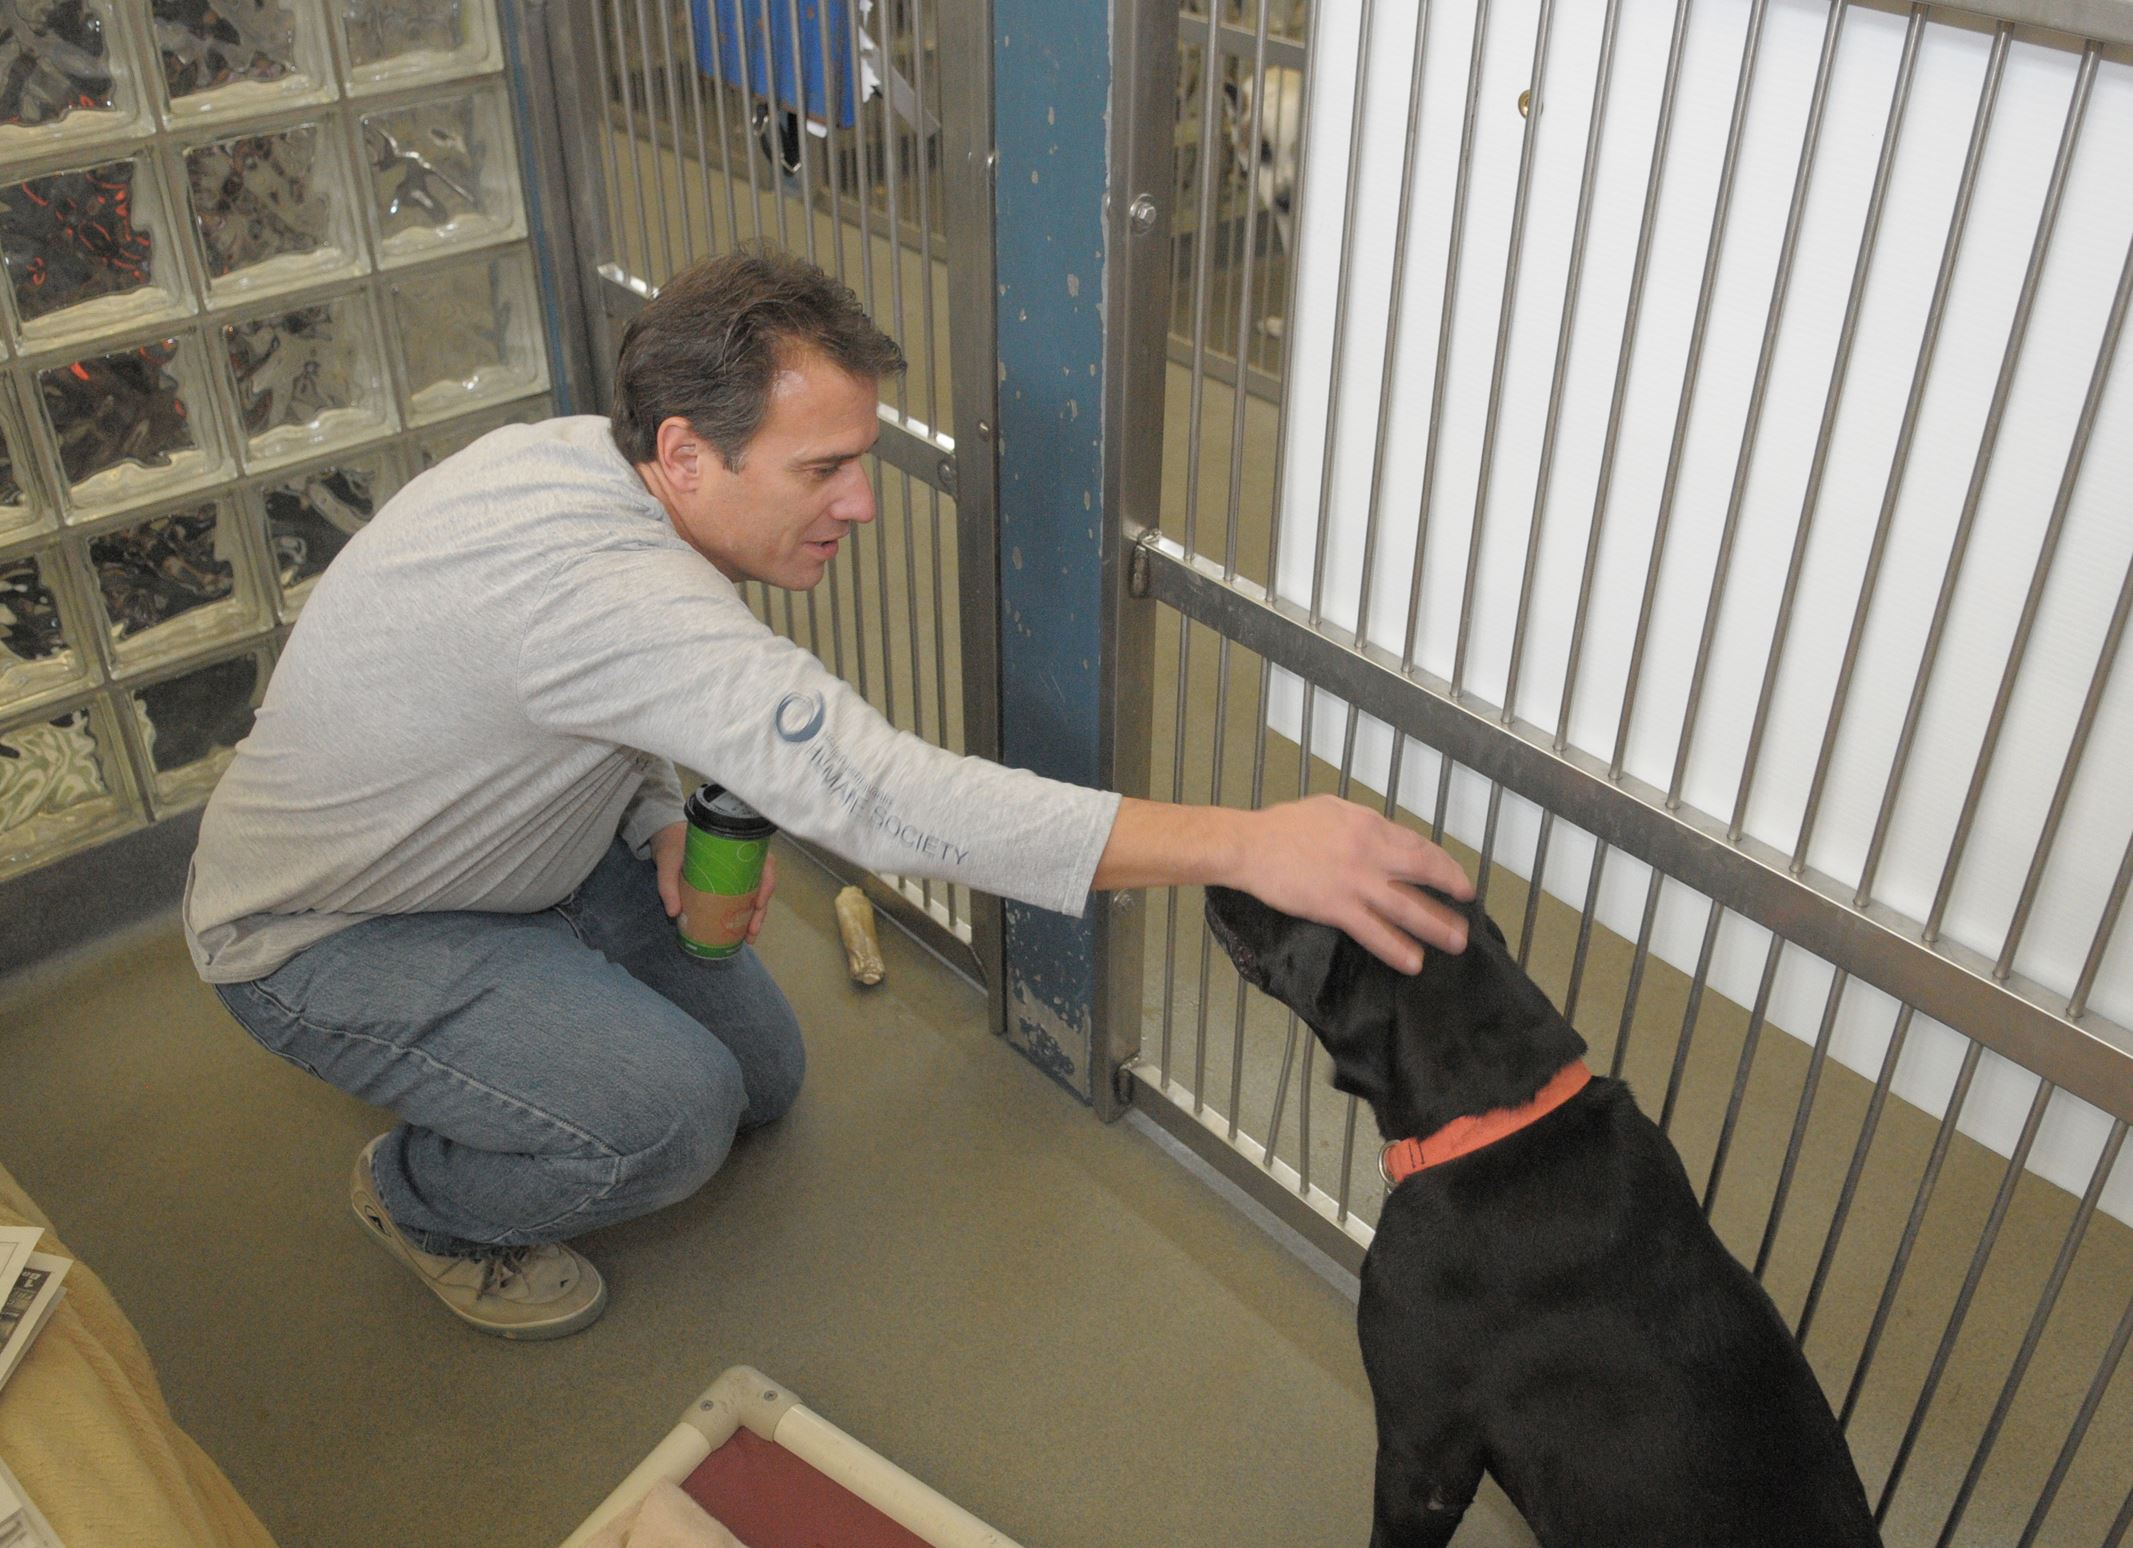 20131214ttHumaneMag2-1 Dave Janusek, executive director of the Western Pennsylvania Humane Society, pets Kisser, a mastiff-Labrador mix, as he starts an overnight stay in Kisser's kennel at the society's facility on the North Side.